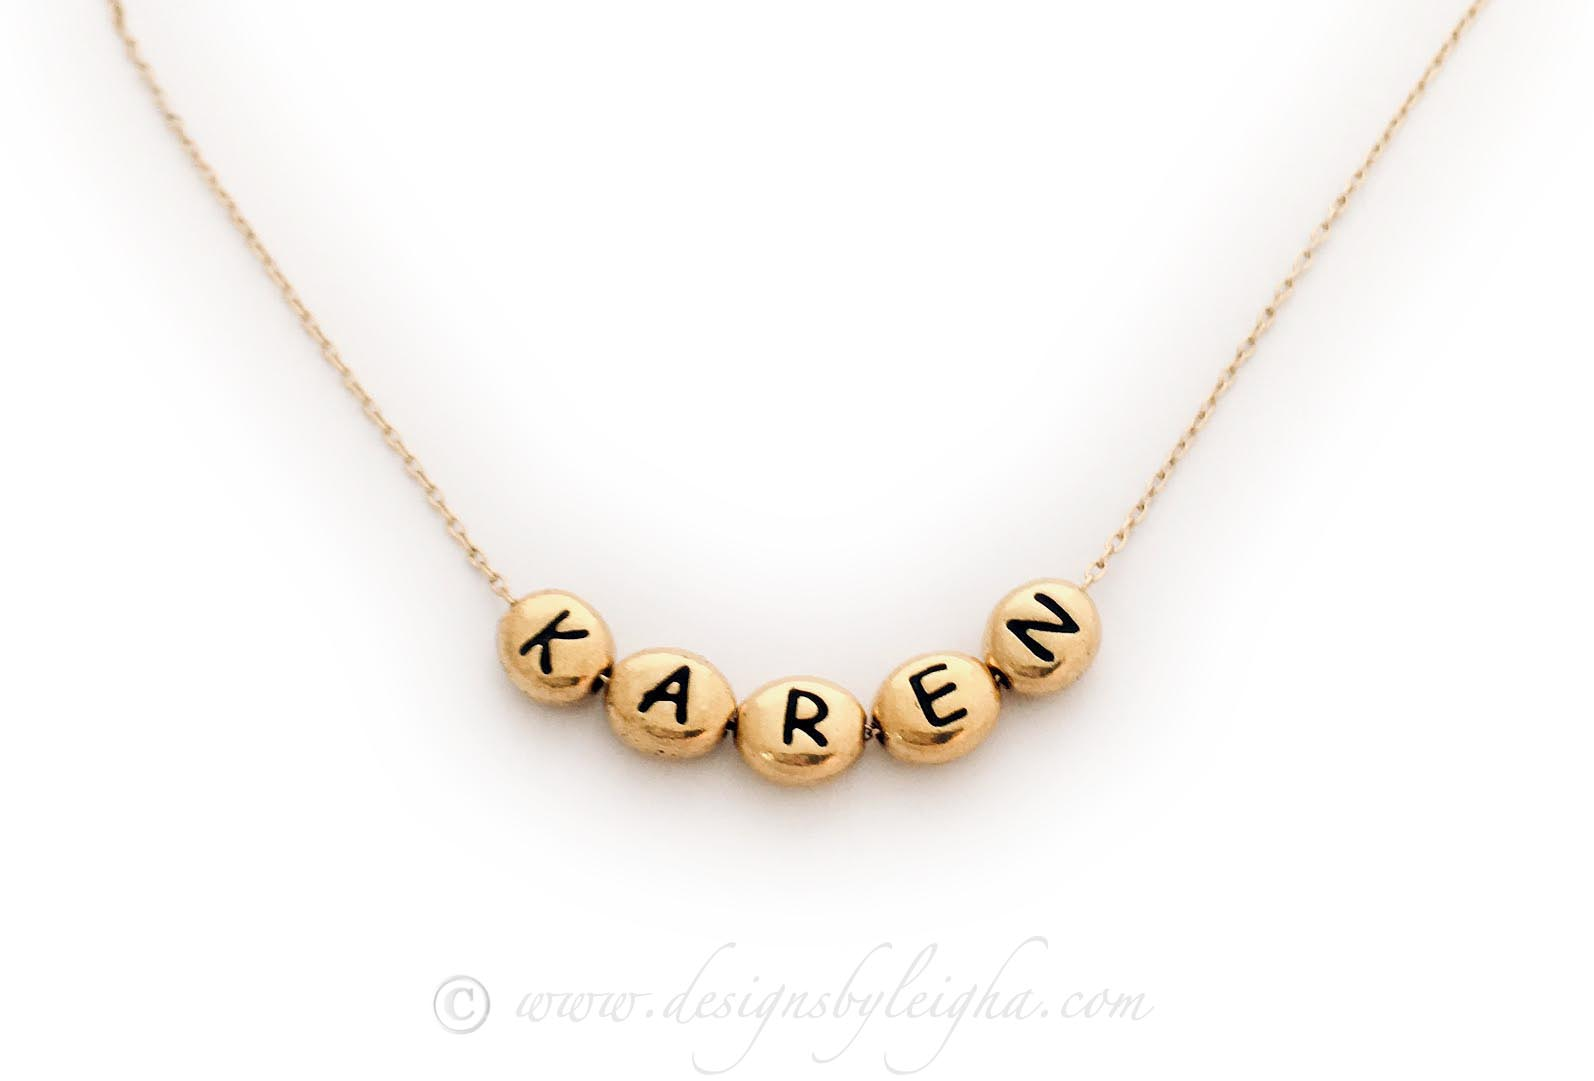 Gold Block Name Necklace with Gold Block Letters on a Gold Chain - DBL-NGold-Blocks - KAREN and 5 gold block letters